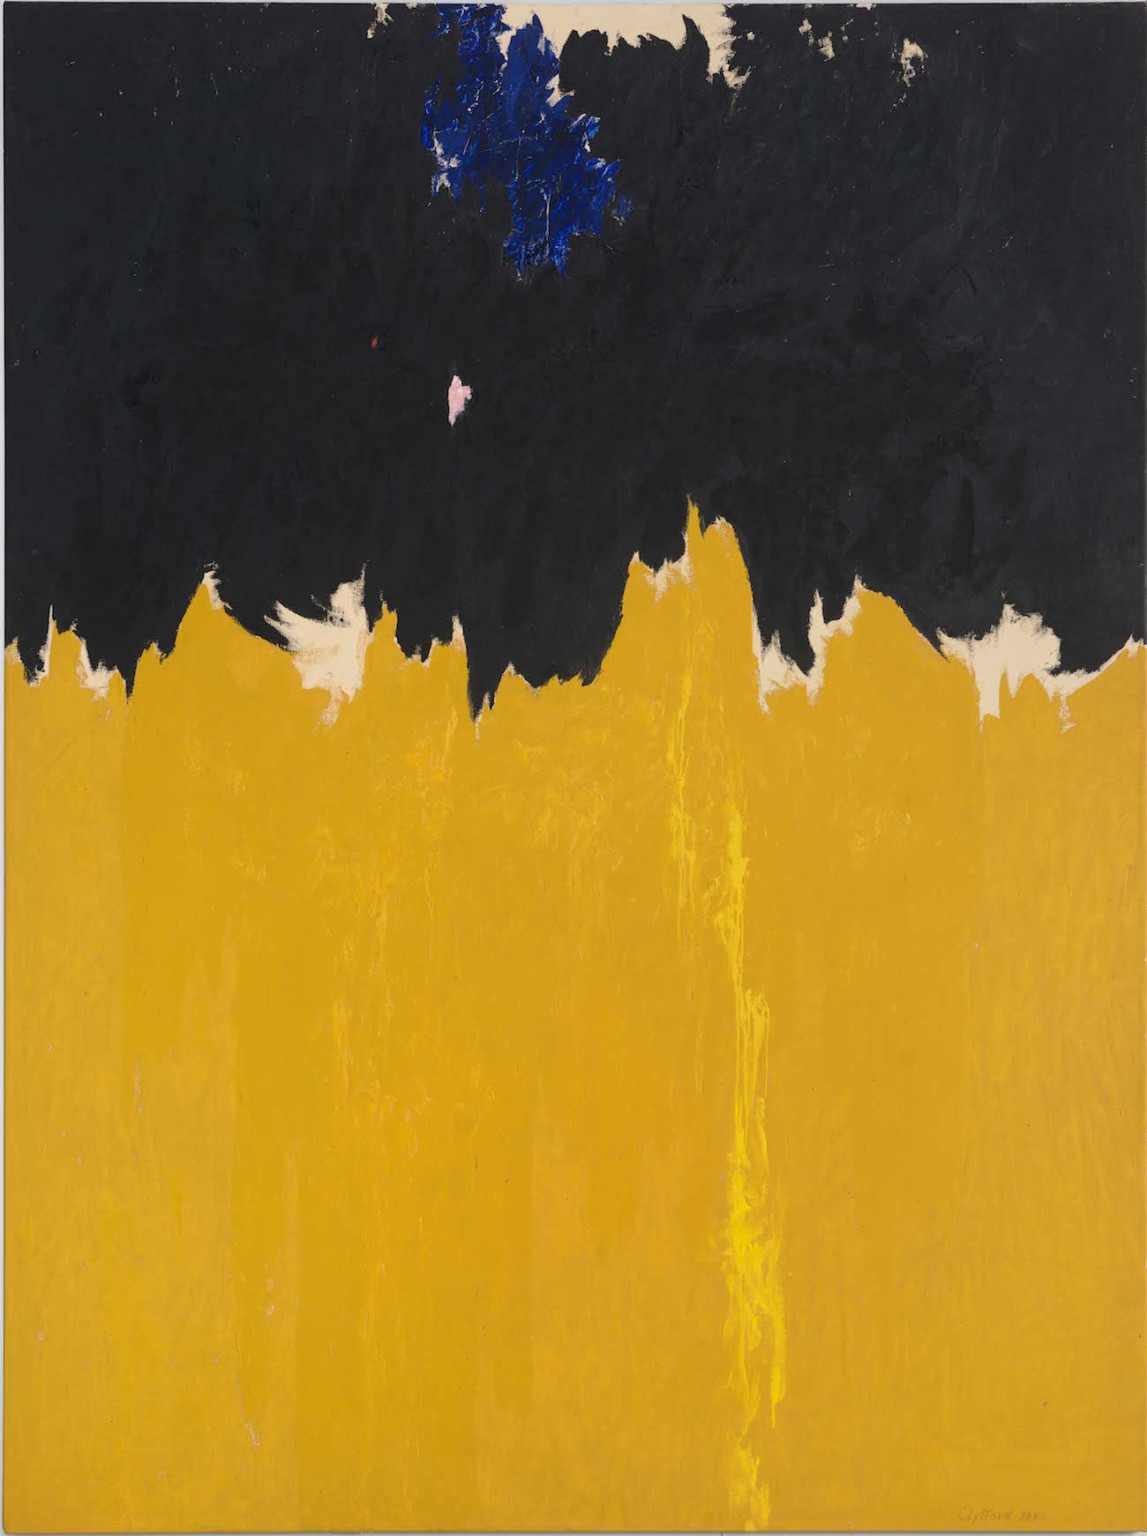 Clyfford Still, PH-950, 1950. Oil on canvas, 233.7 x 177.8 cm. Clyfford Still Museum, Denver (c) City and County of Denver / DACS 2016. Photo courtesy the Clyfford Still Museum, Denver, CO